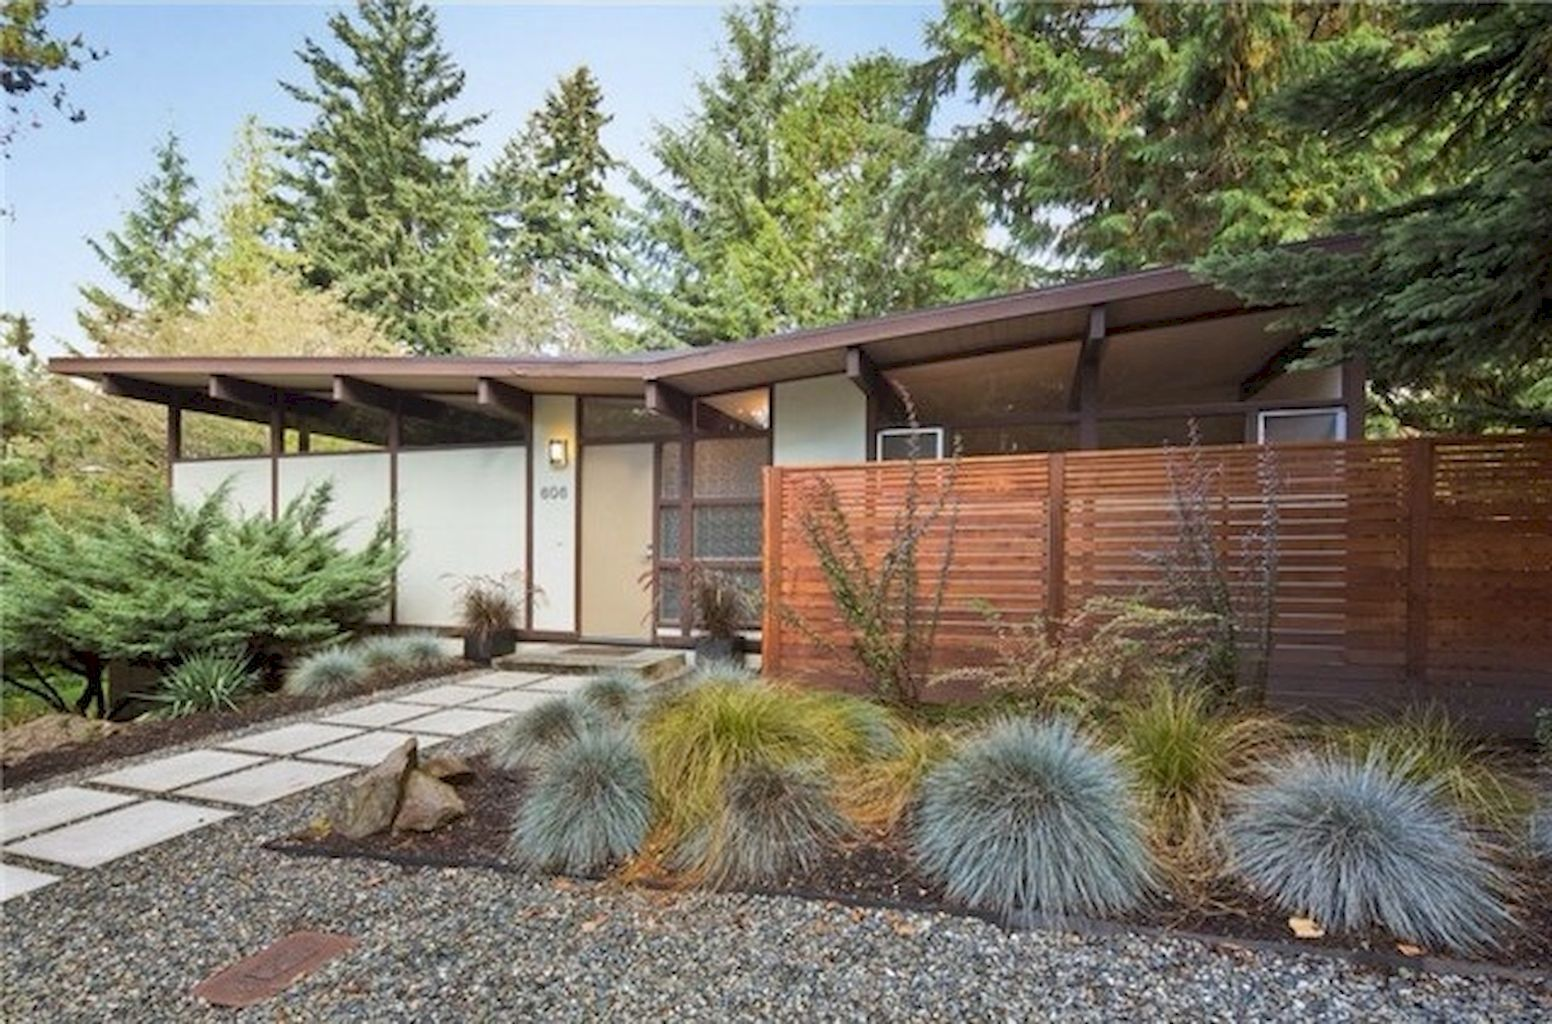 9 Simple Clean Modern Front Yard Landscaping Ideas - Homevialand